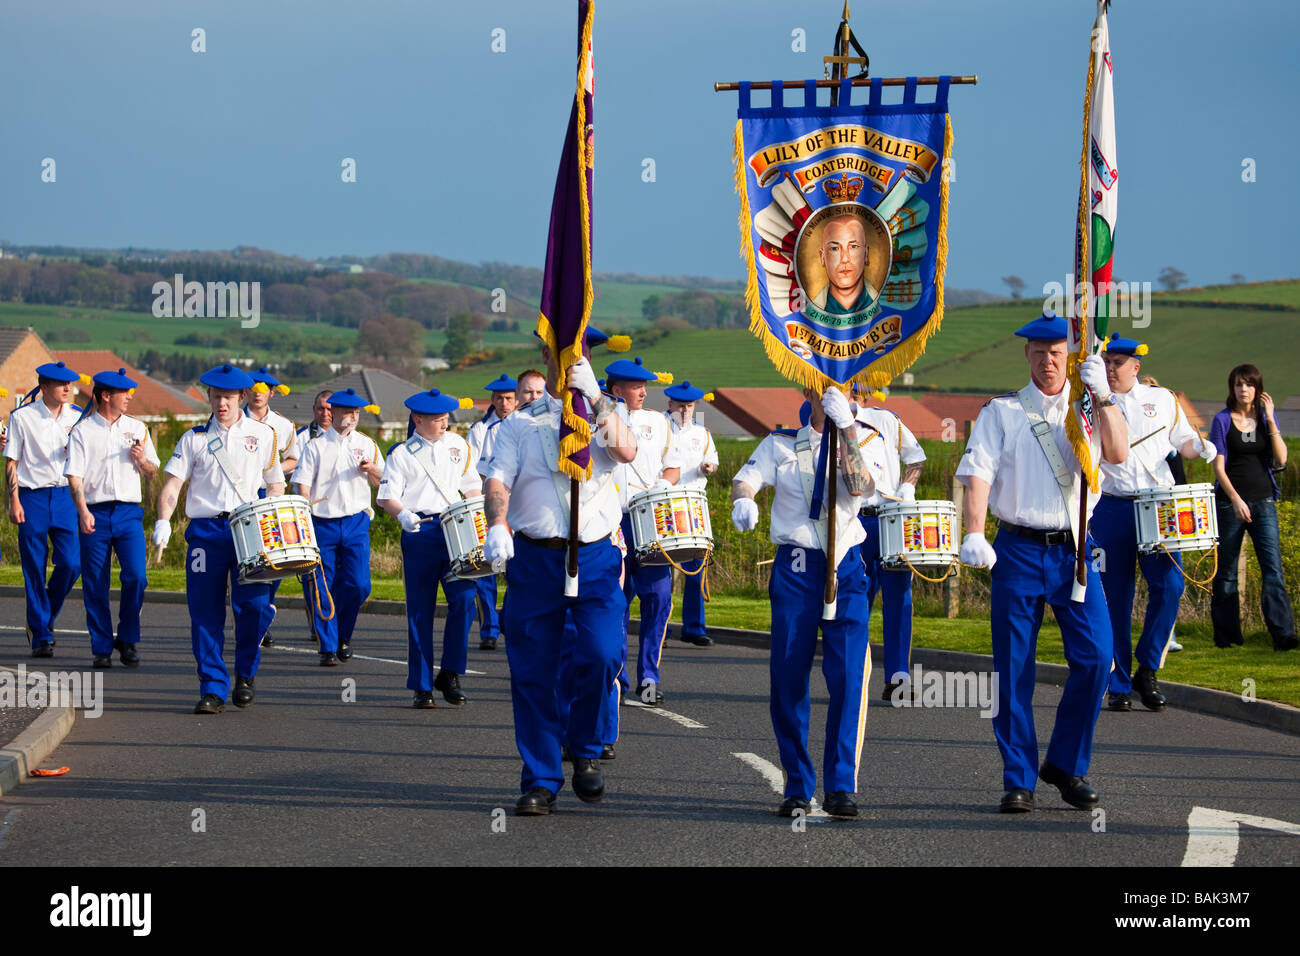 Coatbridge Lily of the Valley loyalist flute band on parade in Dalry, Ayrshire. - Stock Image